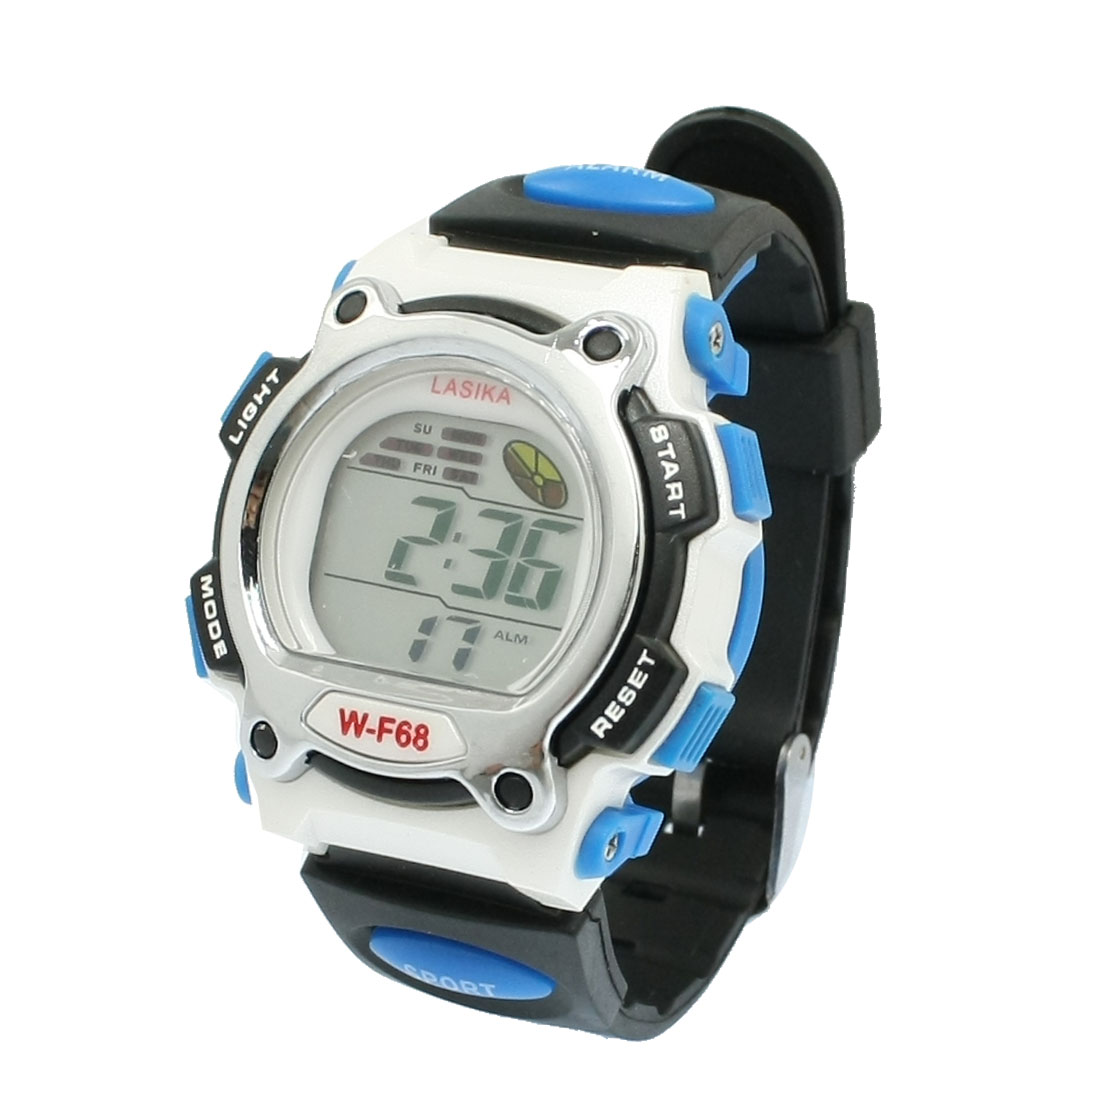 Sports Stopwatch Round Dial Digital Water Resistant Watch Black Blue